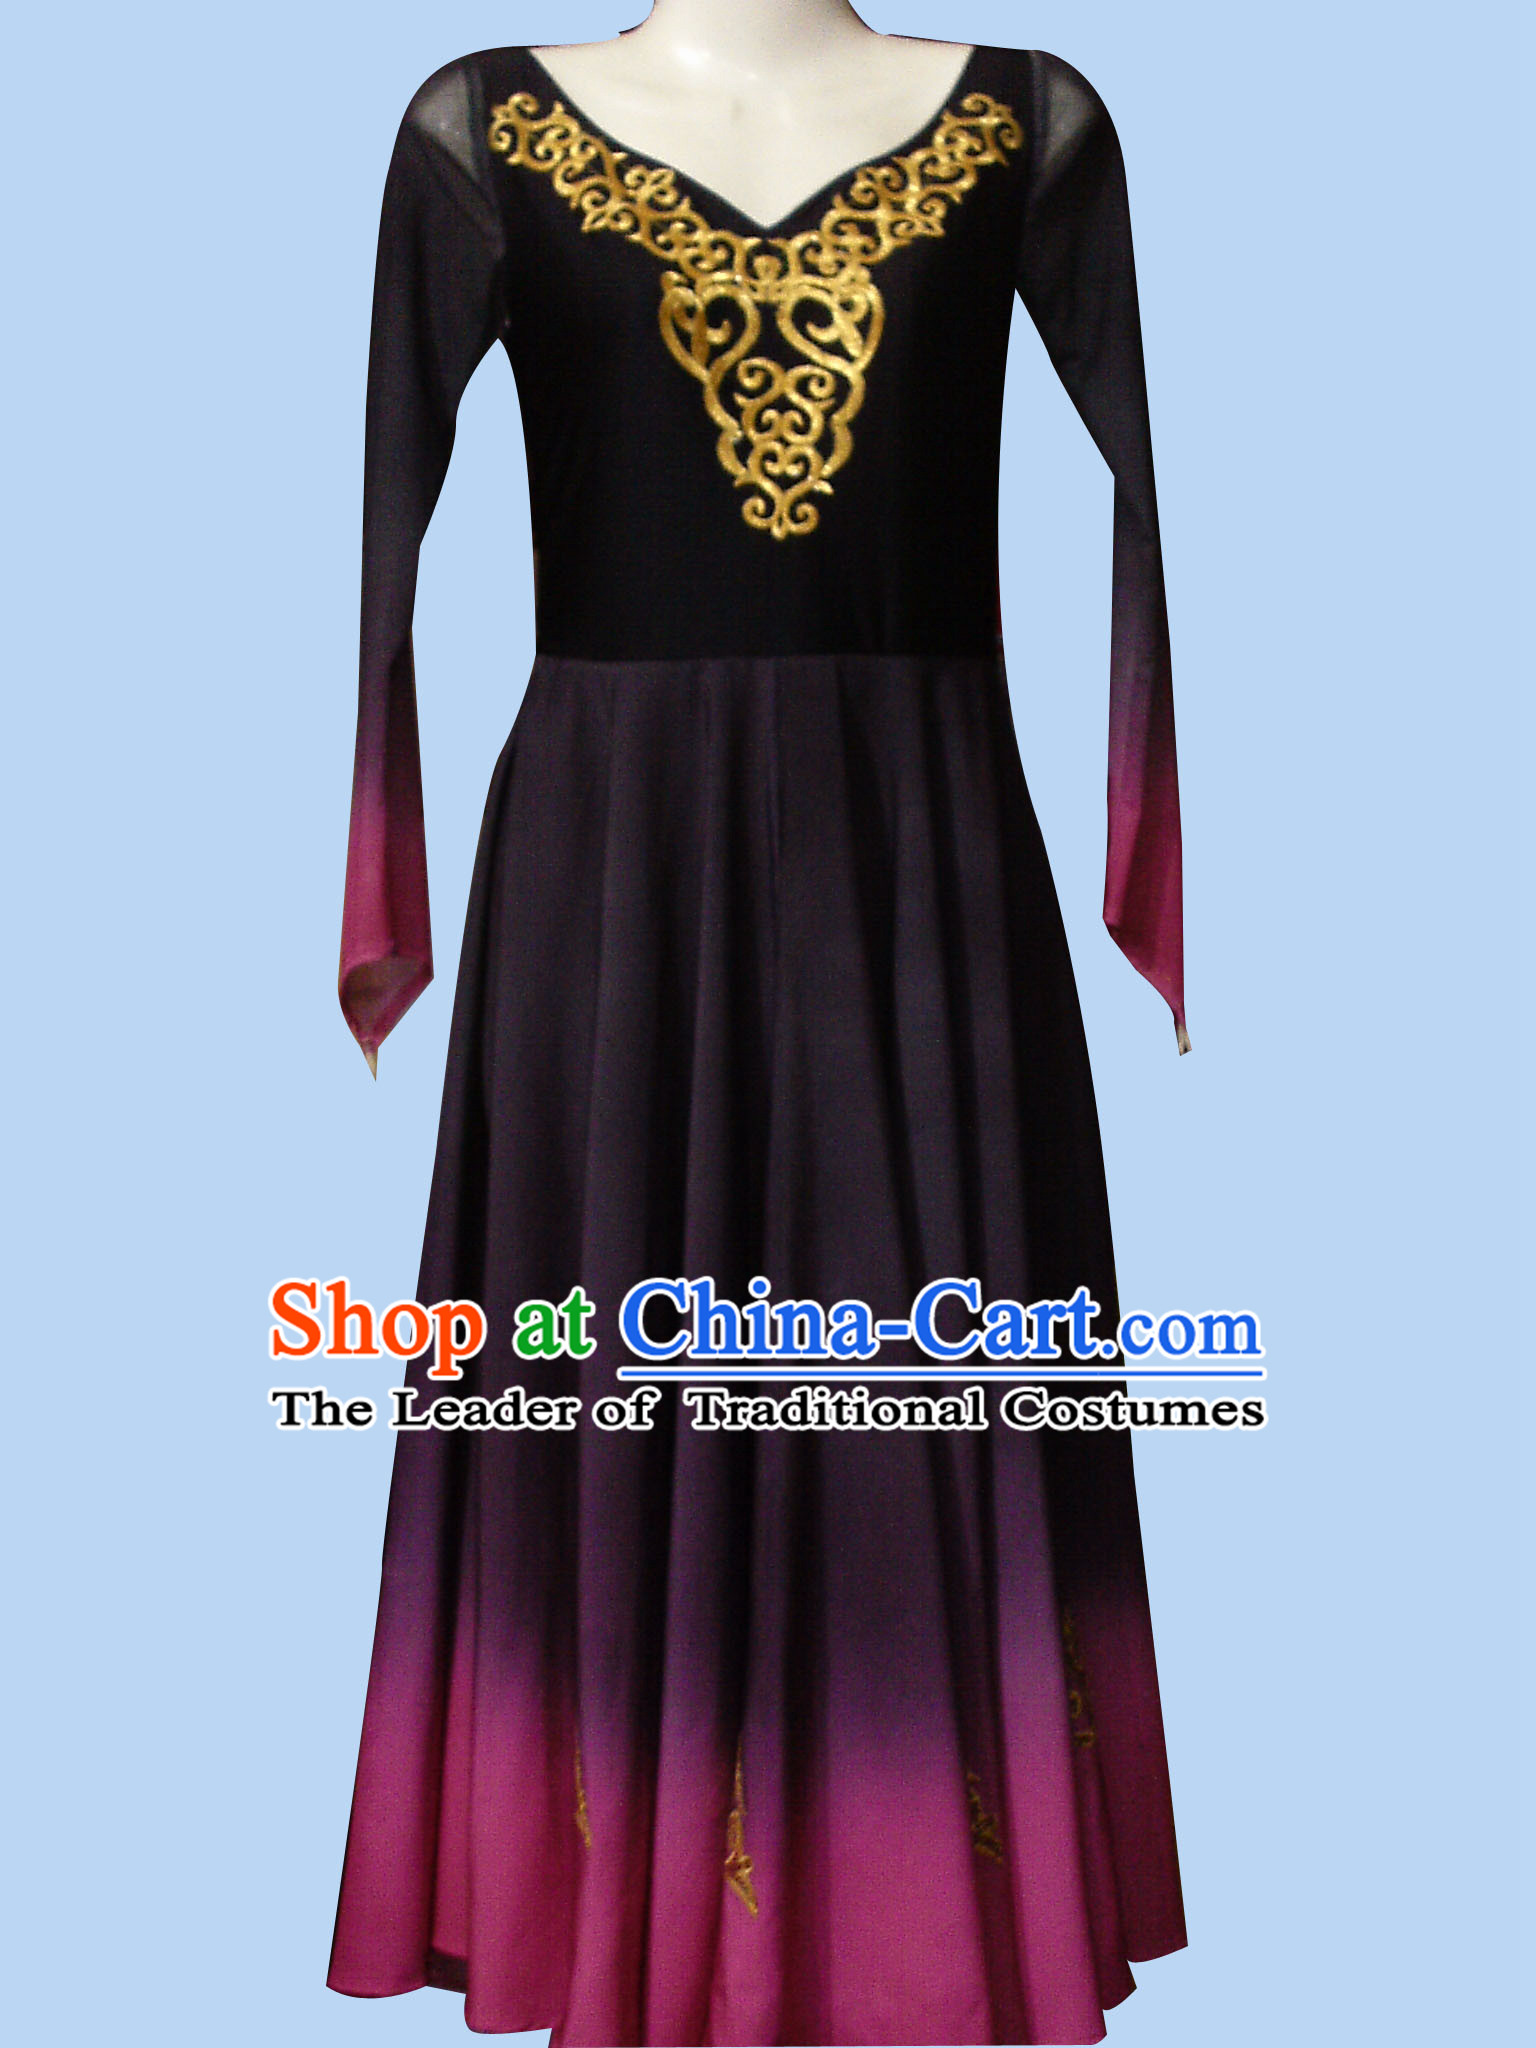 Top Chinese Xinjiang Ethnic Dance Costume Competition Dance Costumes Set